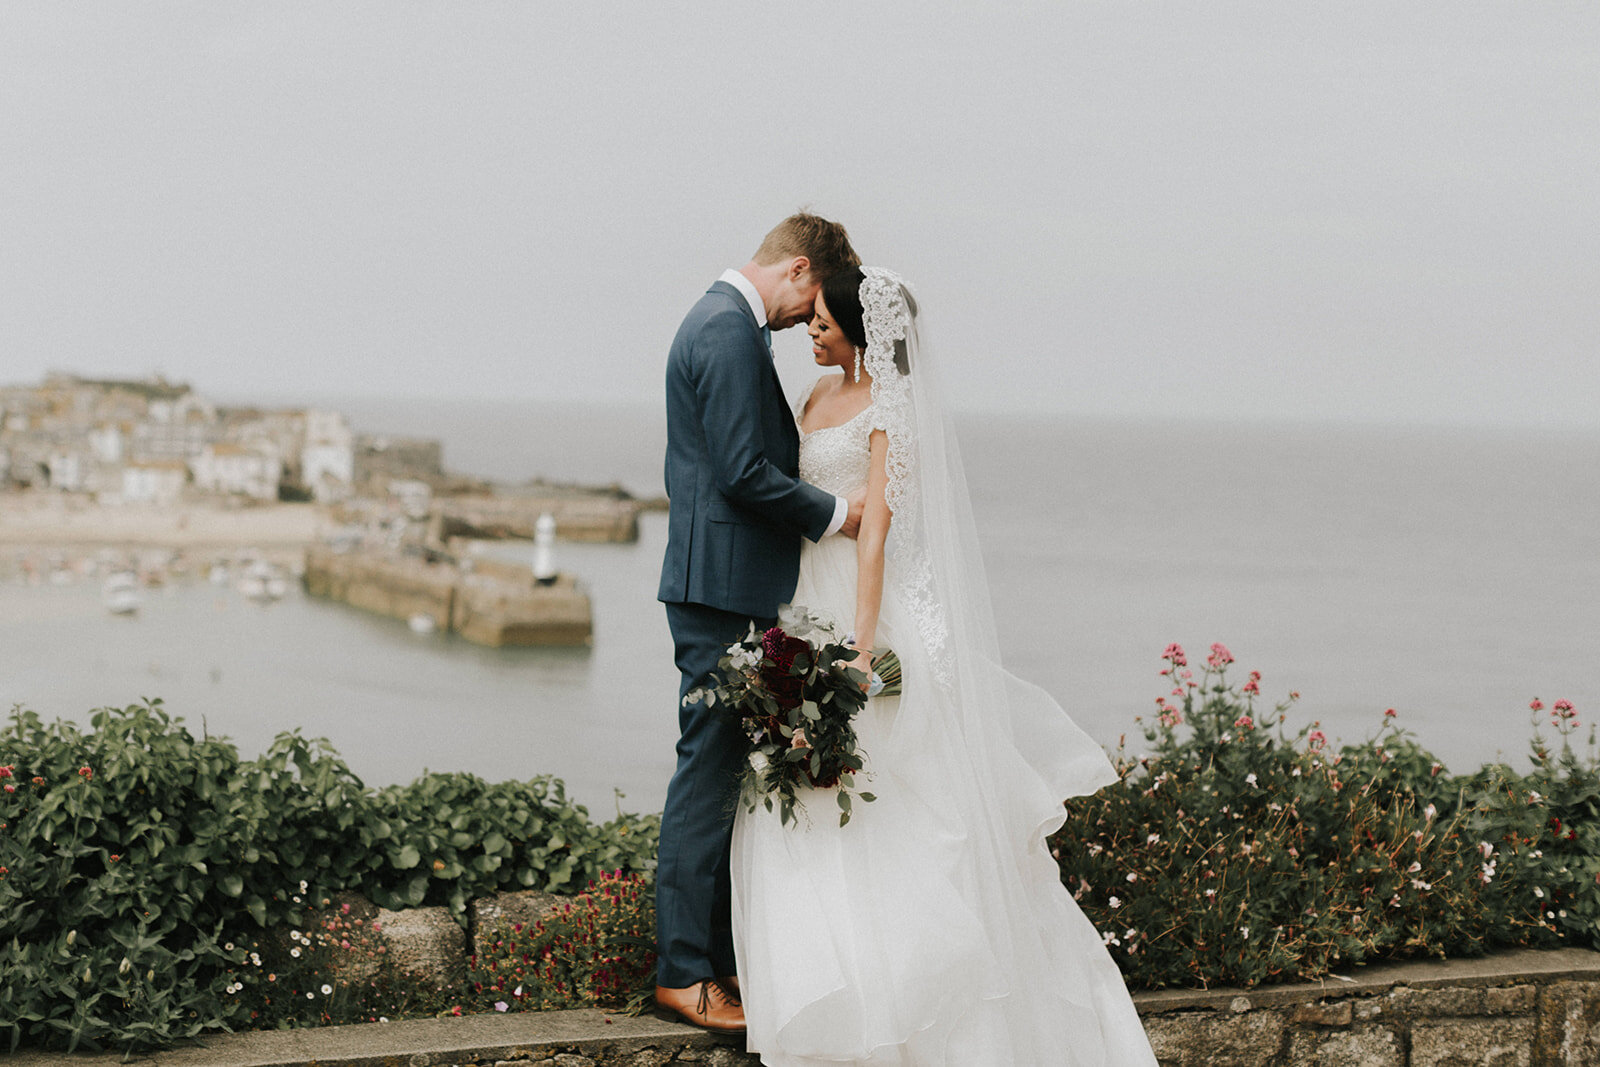 UK-wedding-Destination-Photograher-st-ives-cornwall-london-photographer-elopement-claudia-pj-wedding-8612_websize.jpg